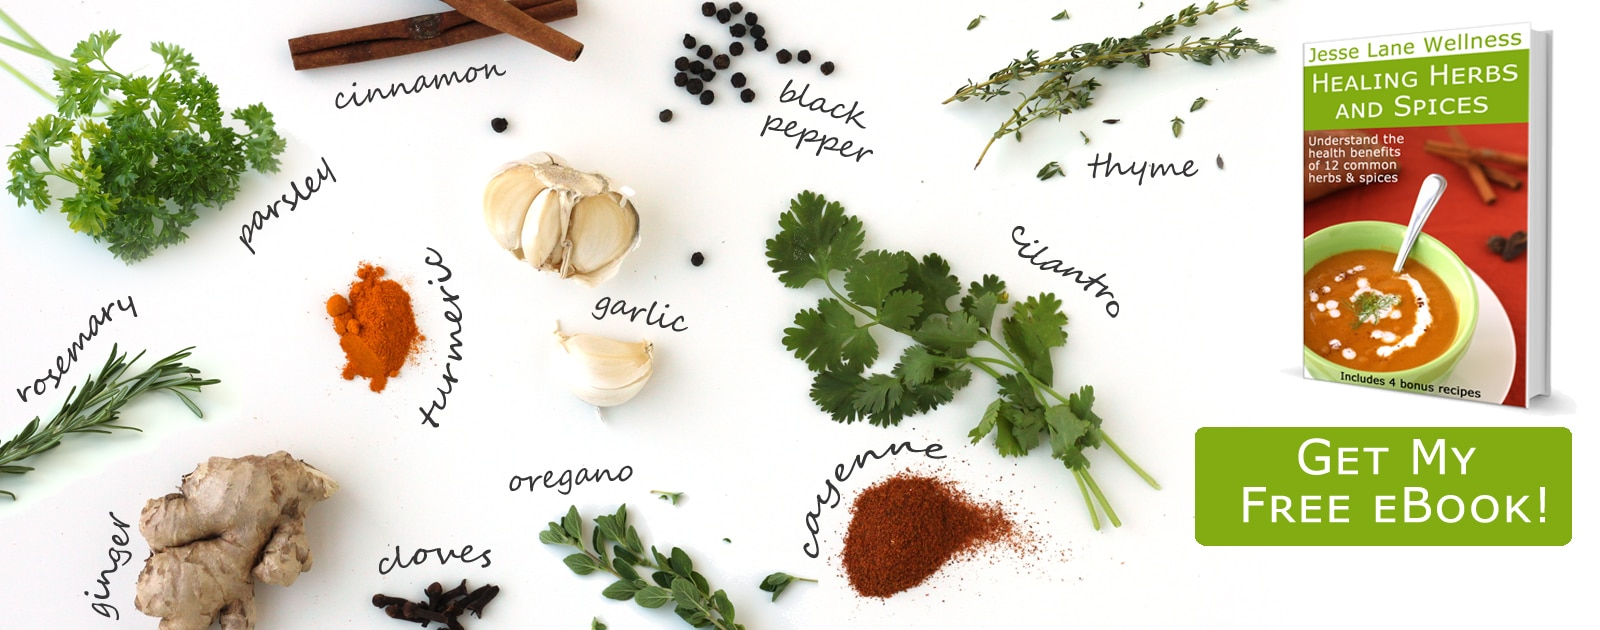 Healing Herbs and Spices eBook by @jesselwellness #eBook #free